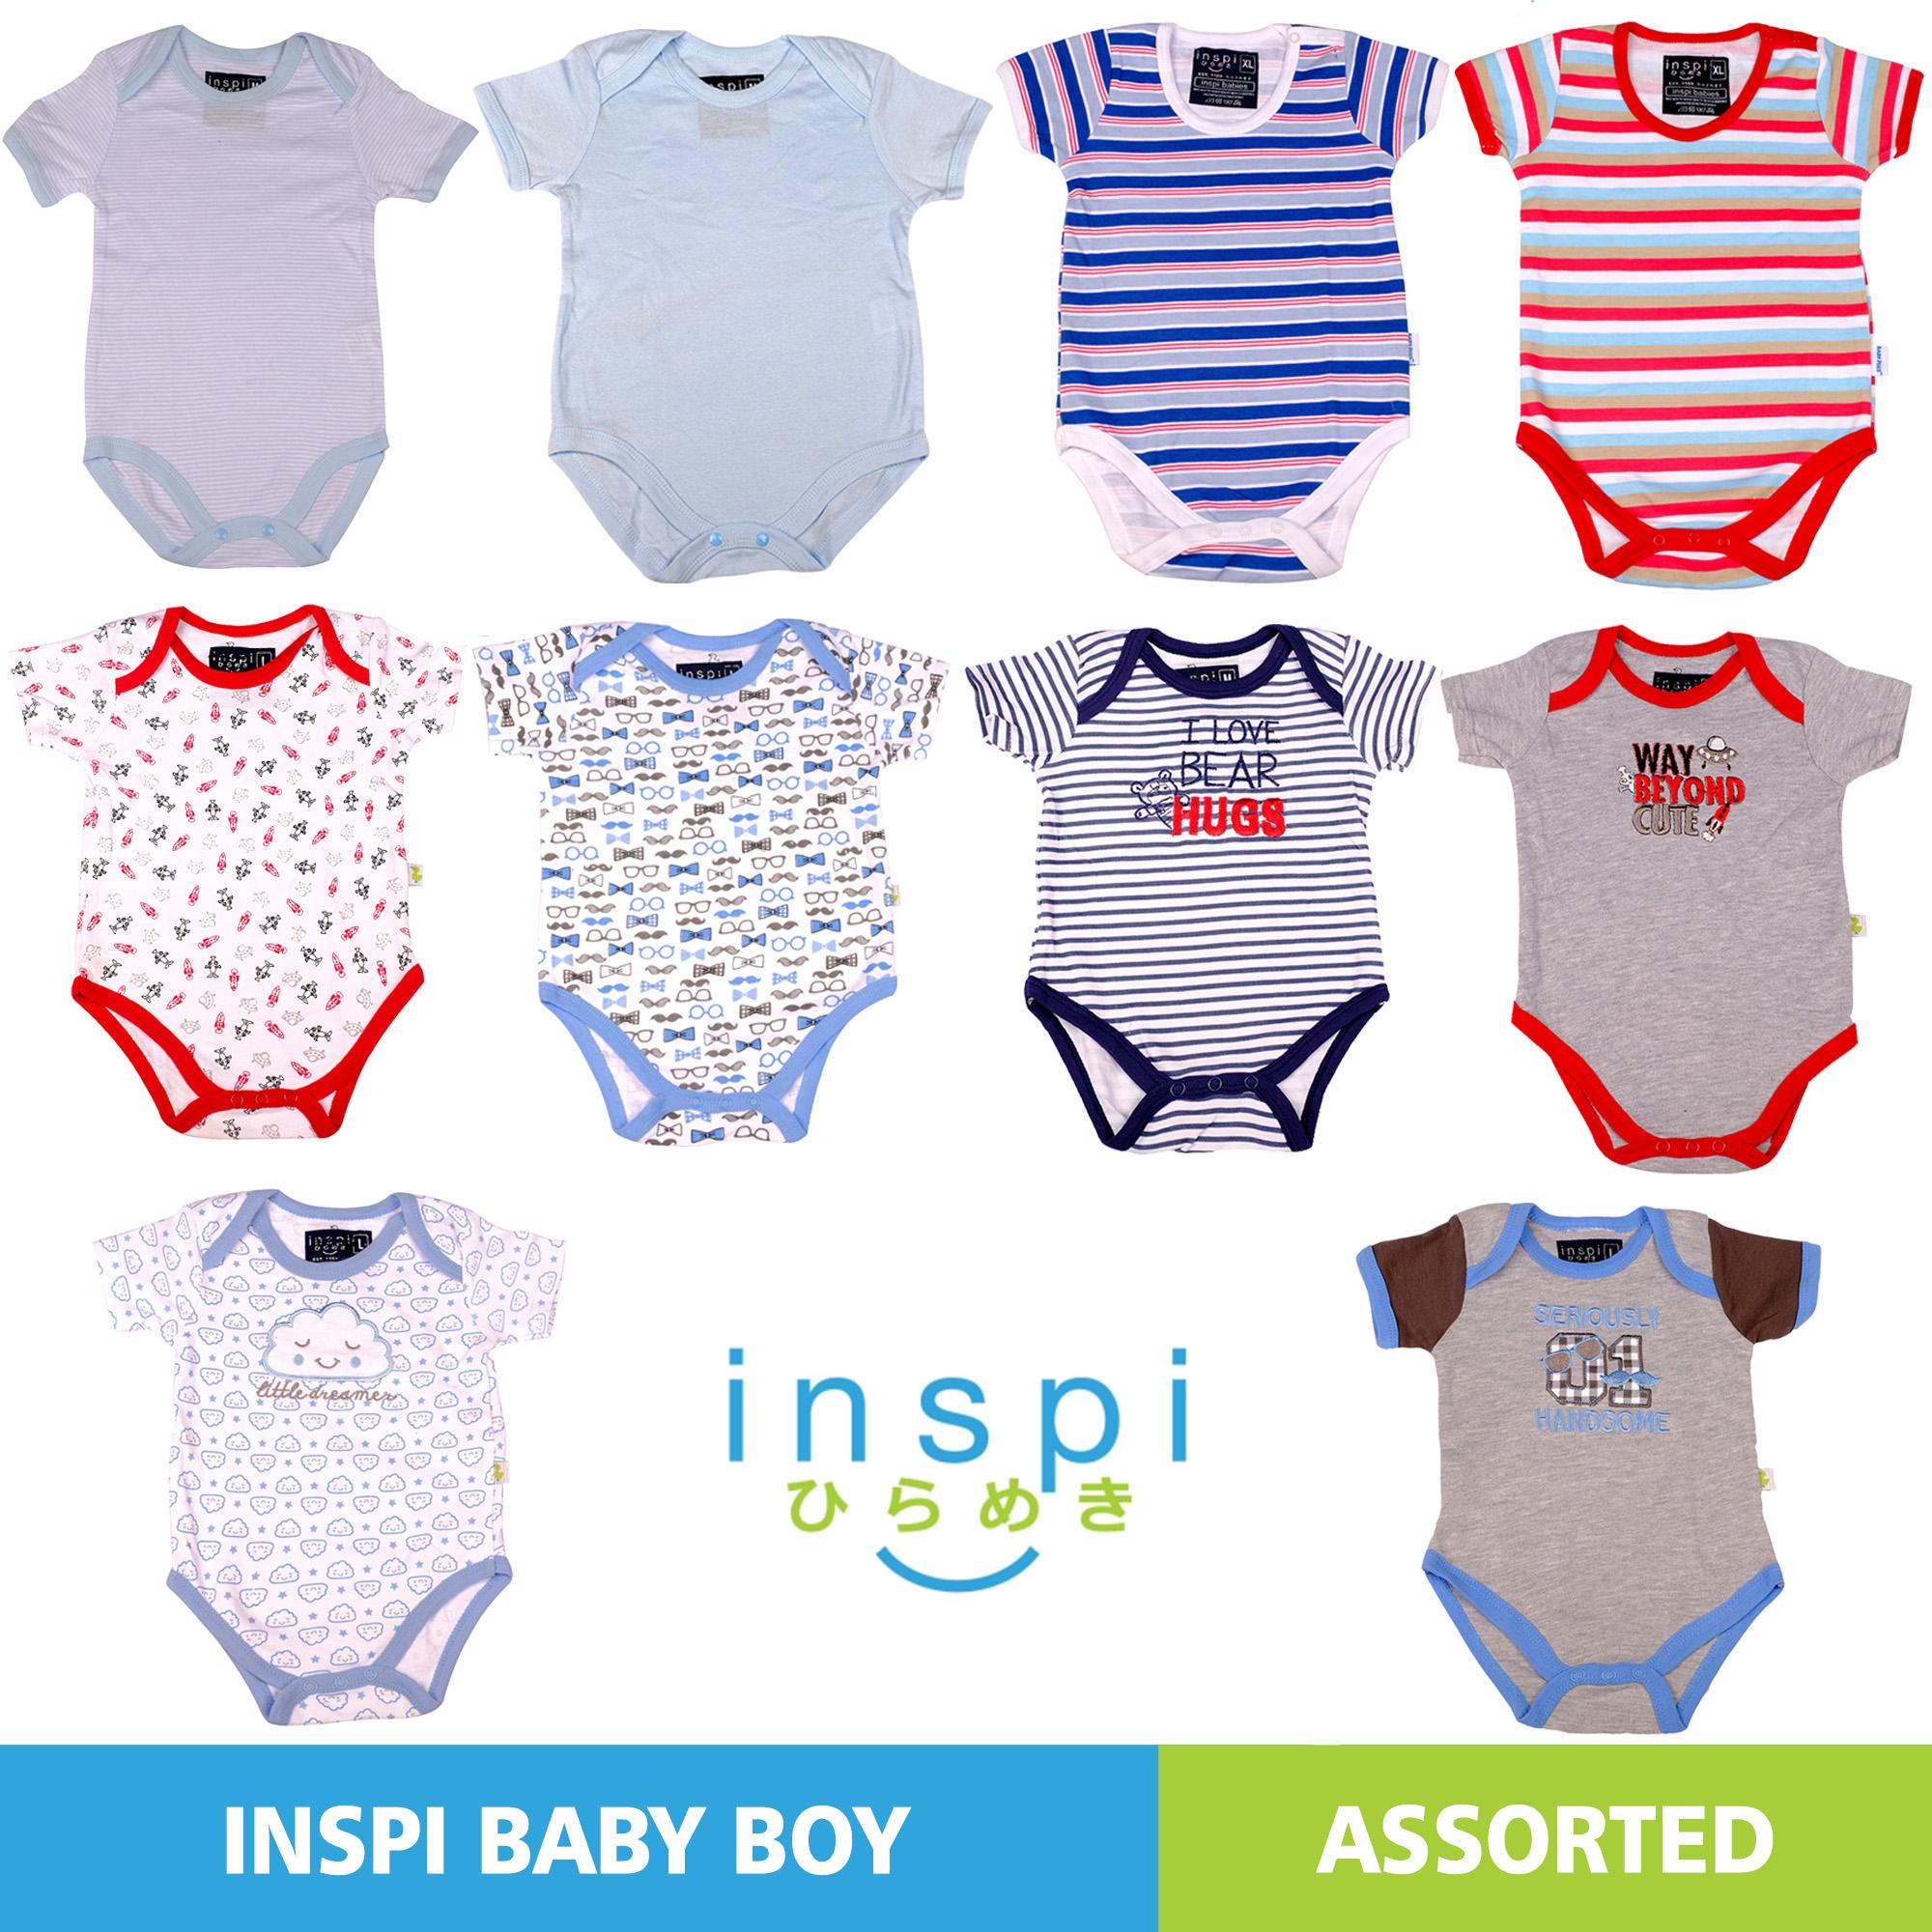 Boys Body Suits For Sale Suits For Baby Boys Online Brands Prices